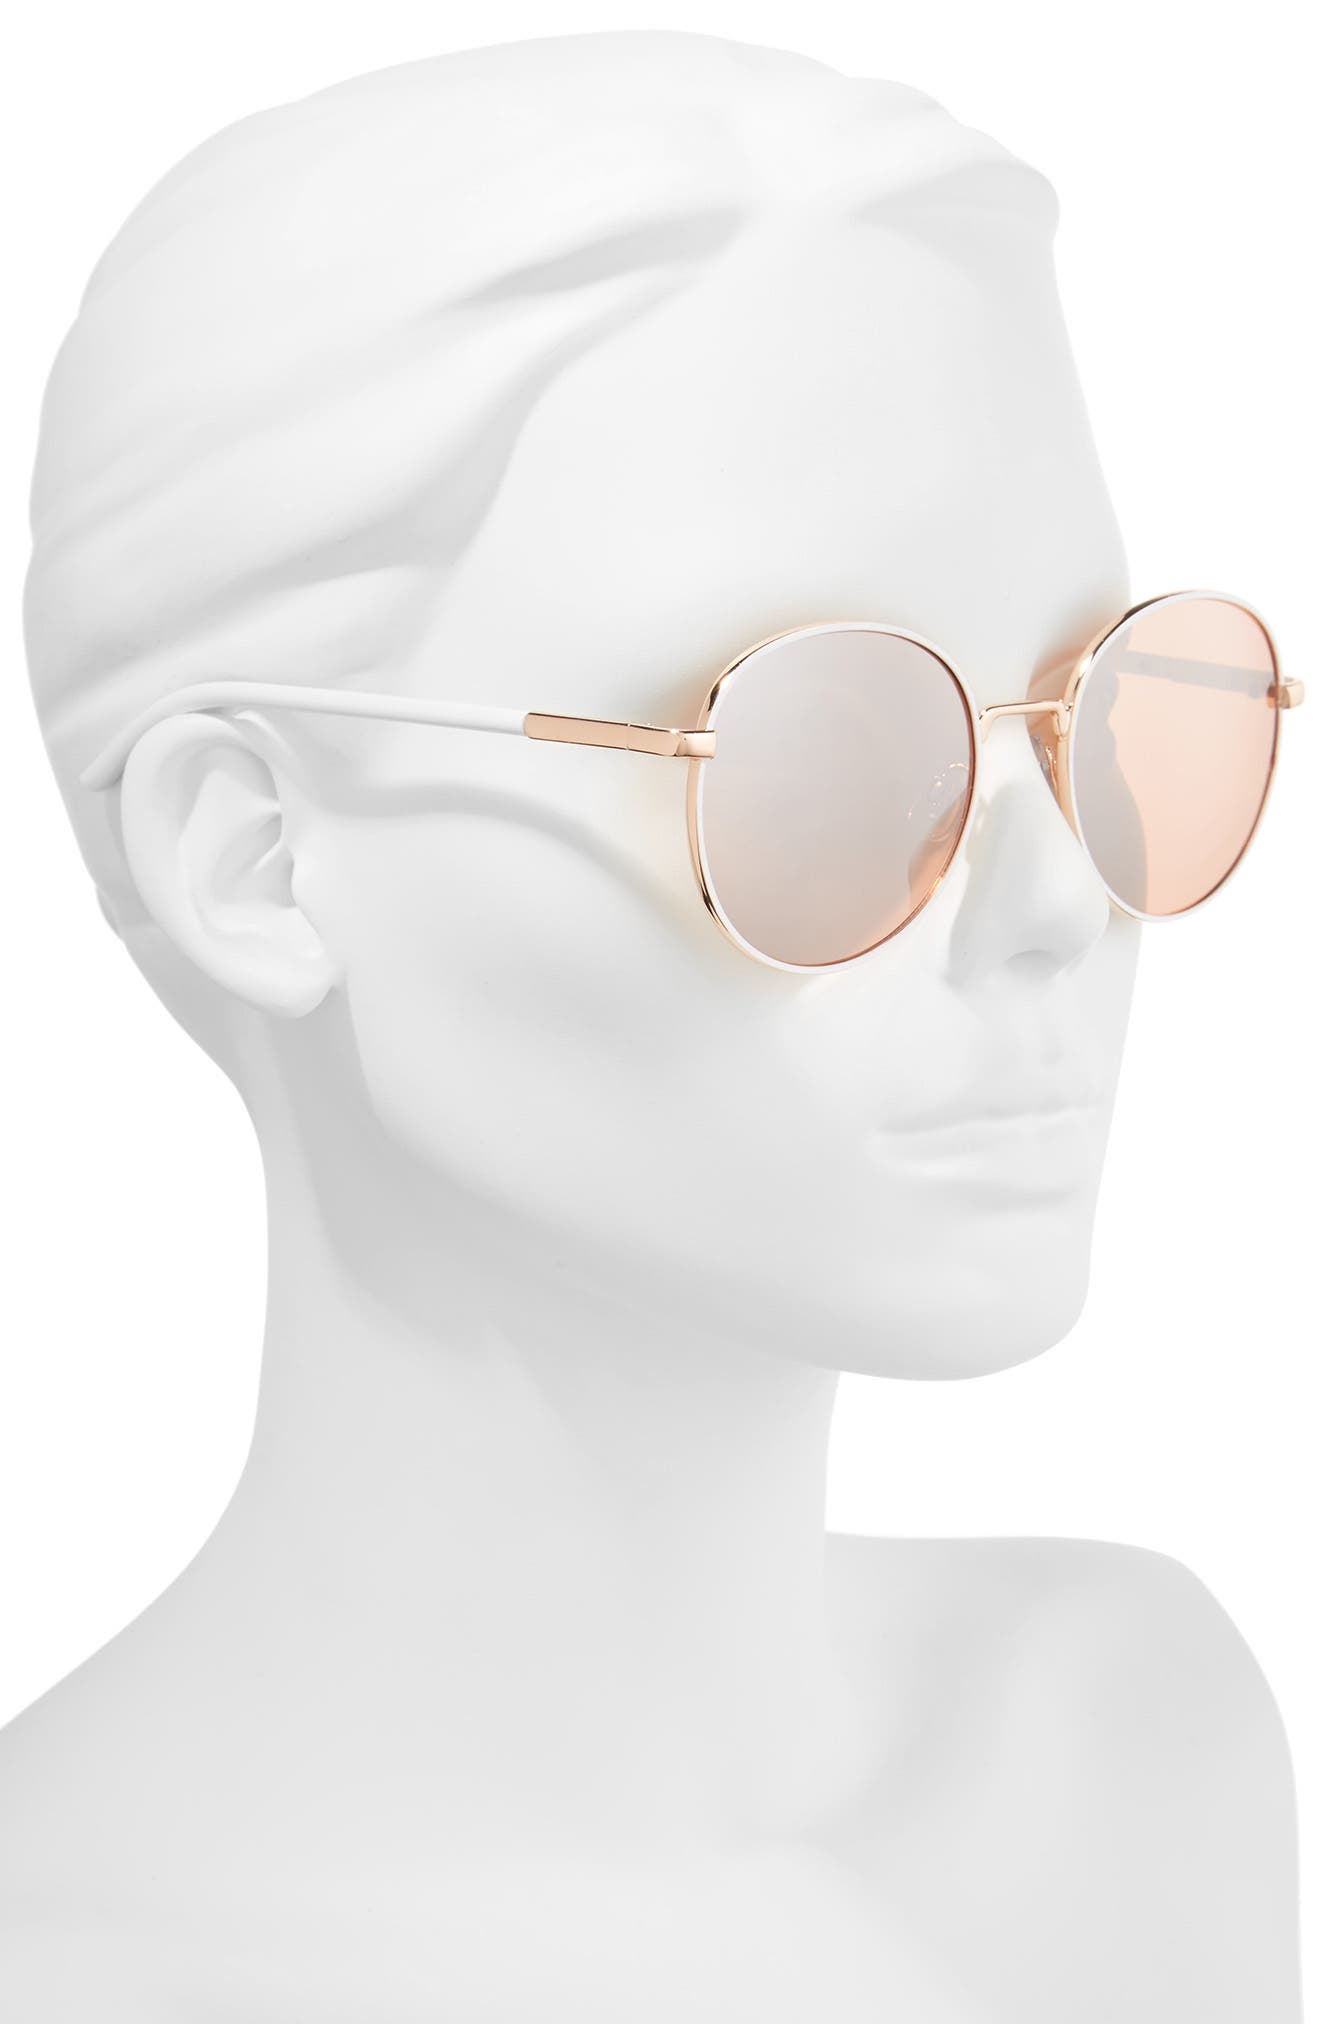 55mm Round Sunglasses,                             Alternate thumbnail 2, color,                             WHITE/ ROSE GOLD